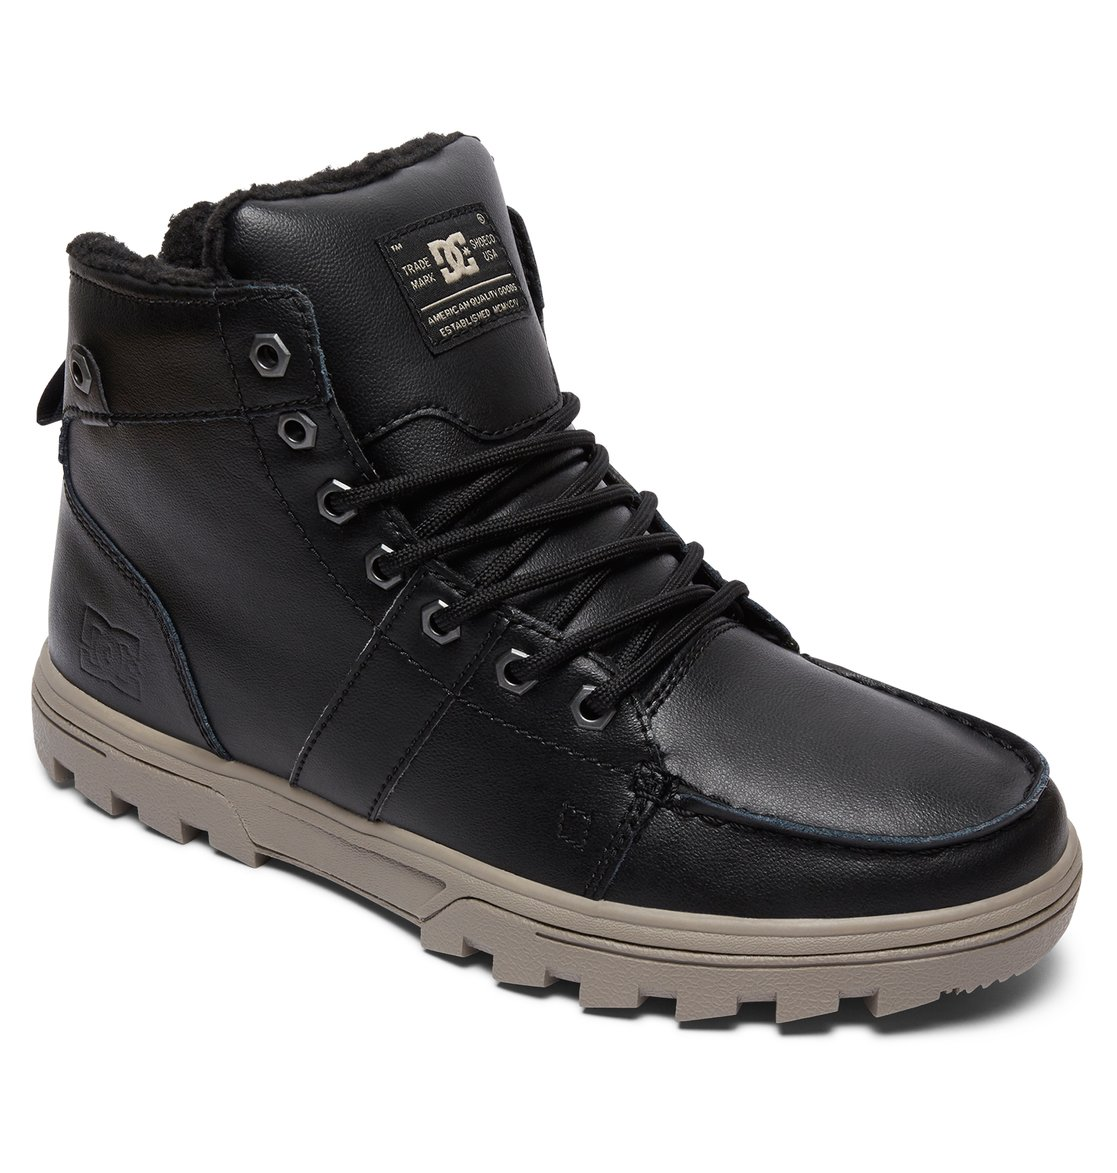 Men's Woodland Winter Boots 303241 | DC Shoes